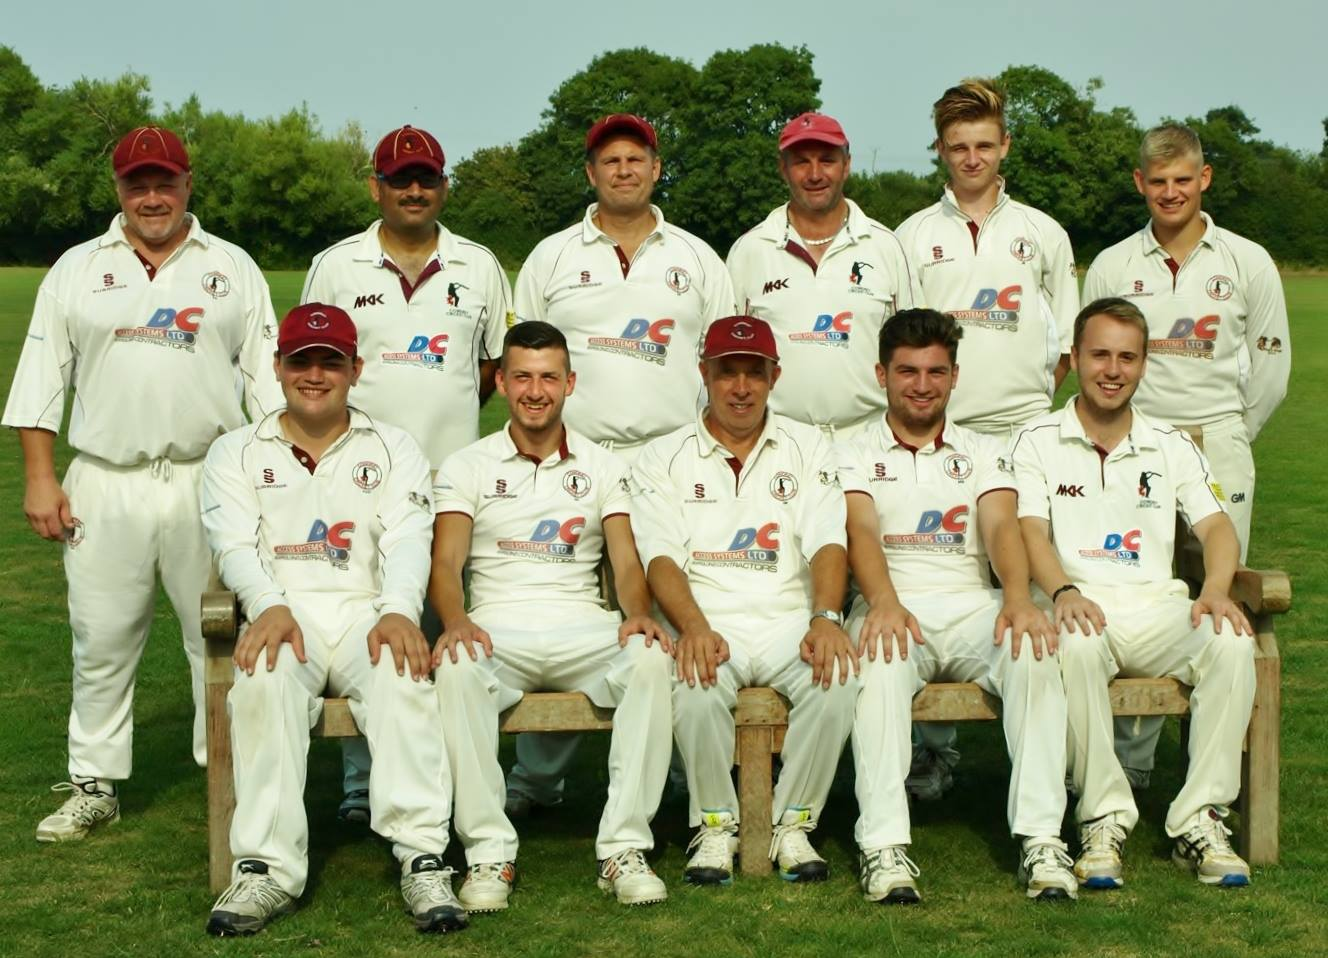 2s - Cowdrey CC - The home of cricket in Tonbridge